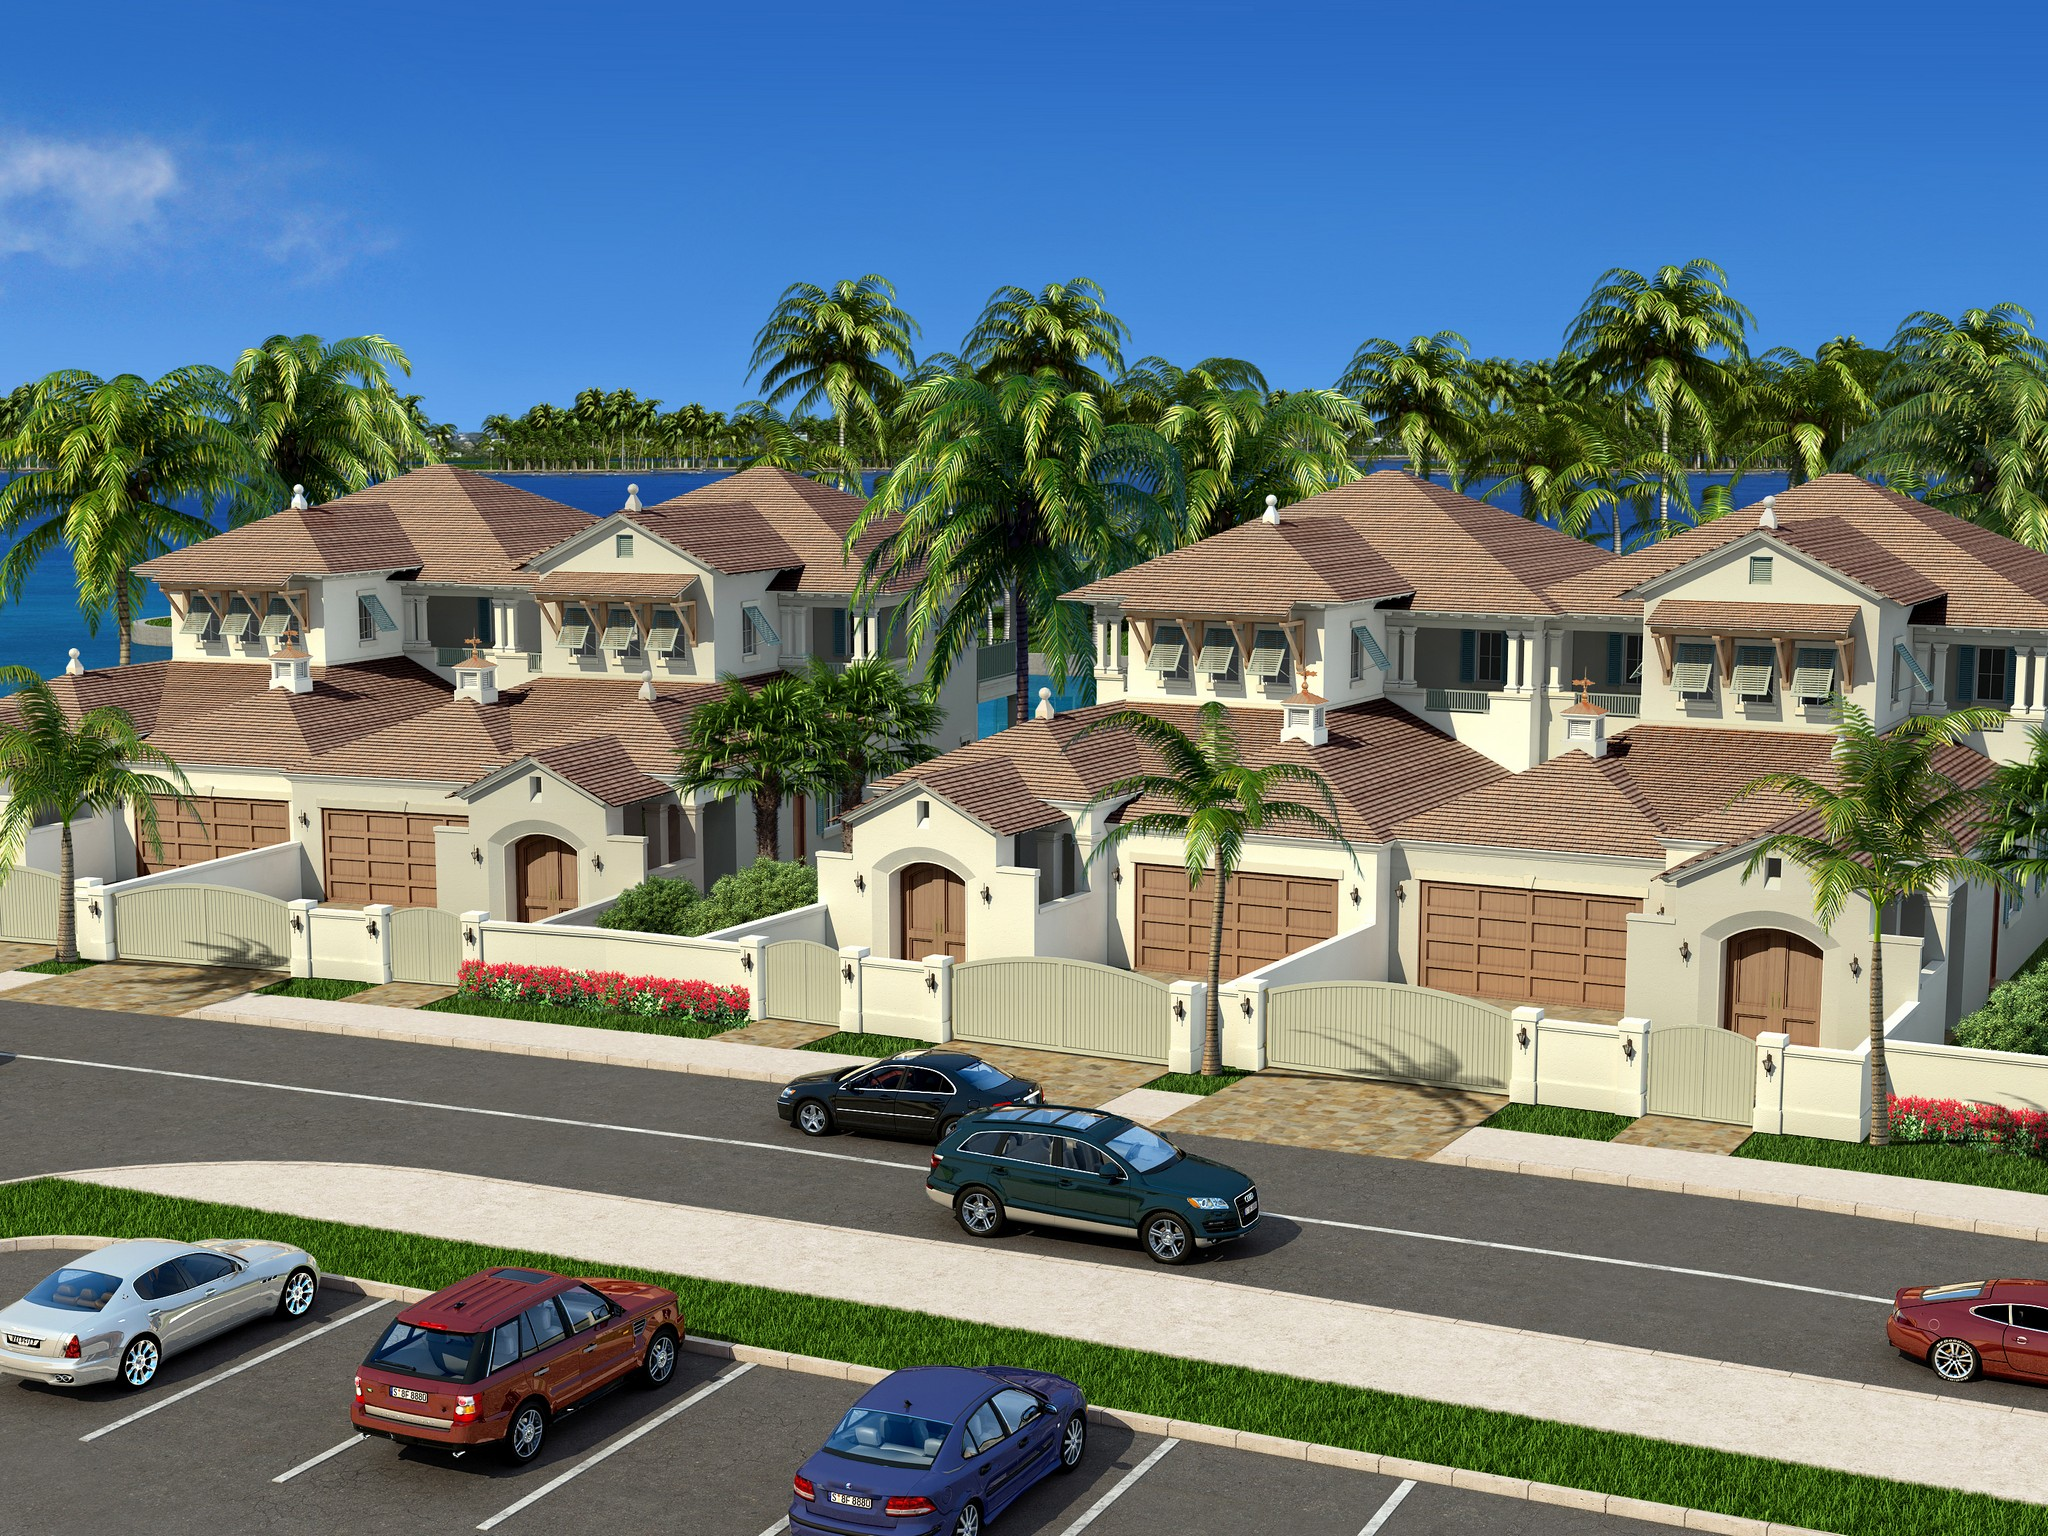 Moradia em banda para Venda às Luxurious Riverfront Townhome on Royal Palm Pointe 21 Royal Palm Pointe #1 Vero Beach, Florida 32960 Estados Unidos